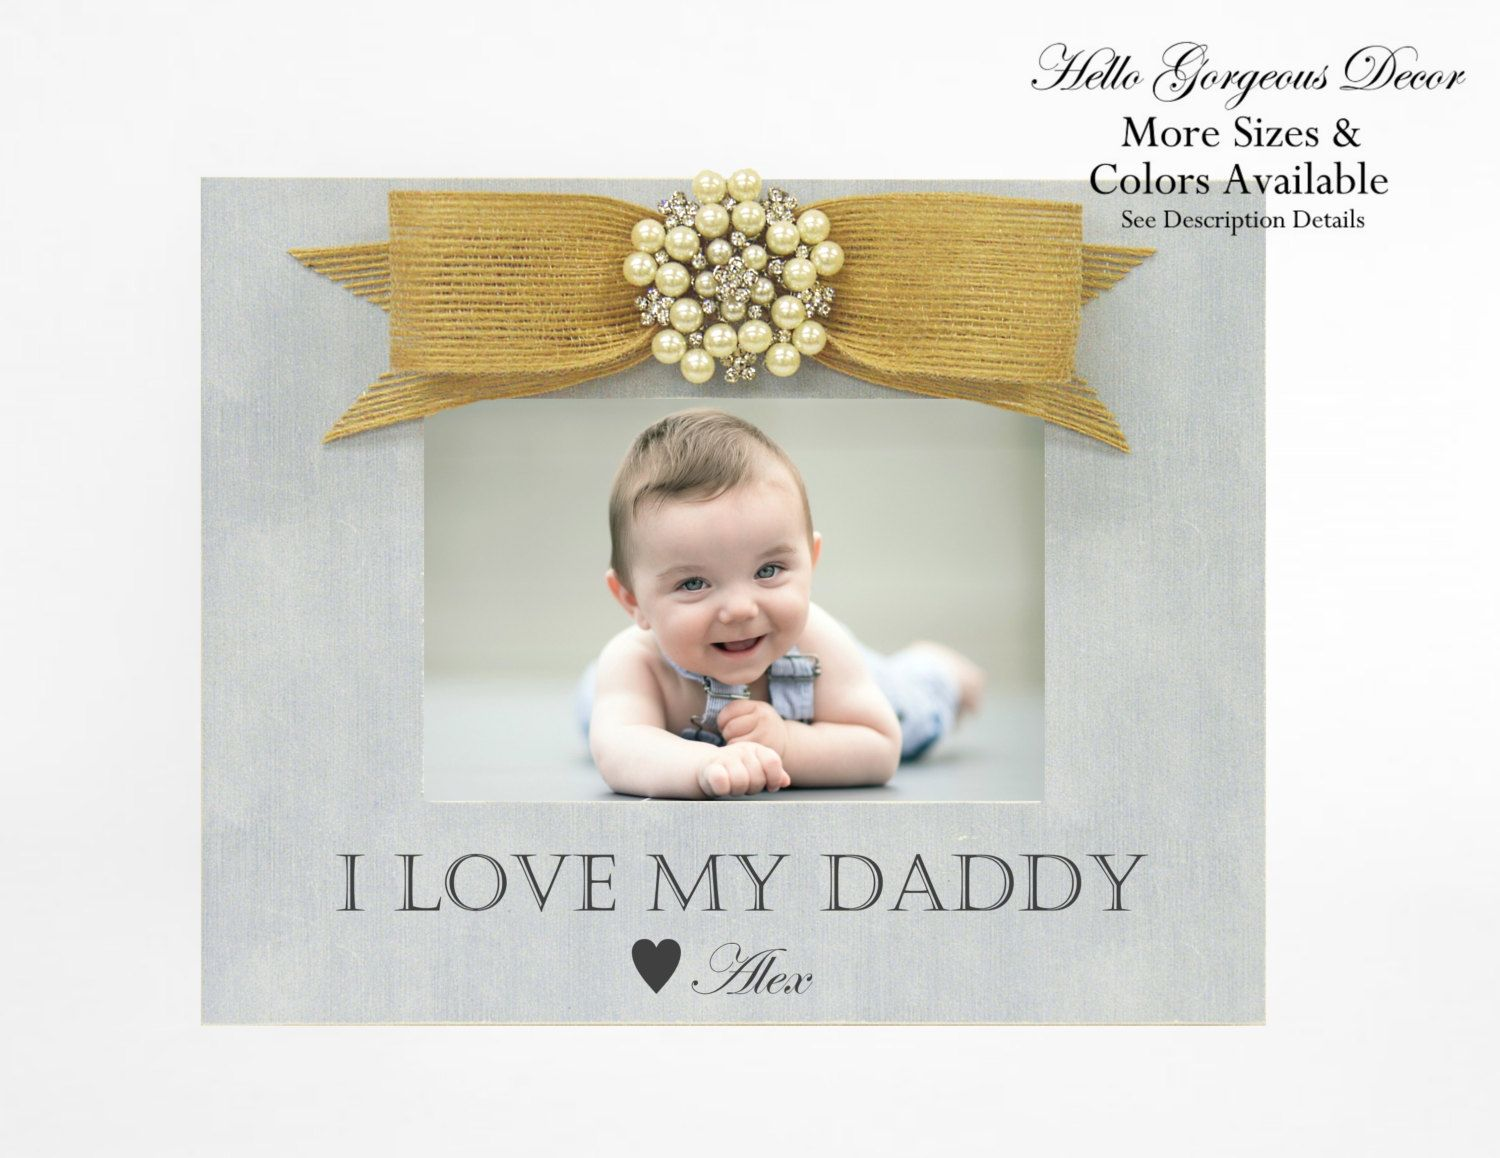 Baby Picture Frame Gift To Dad Father From Child Personalized I Love My Daddy Custom Photo New Birthday Newborn